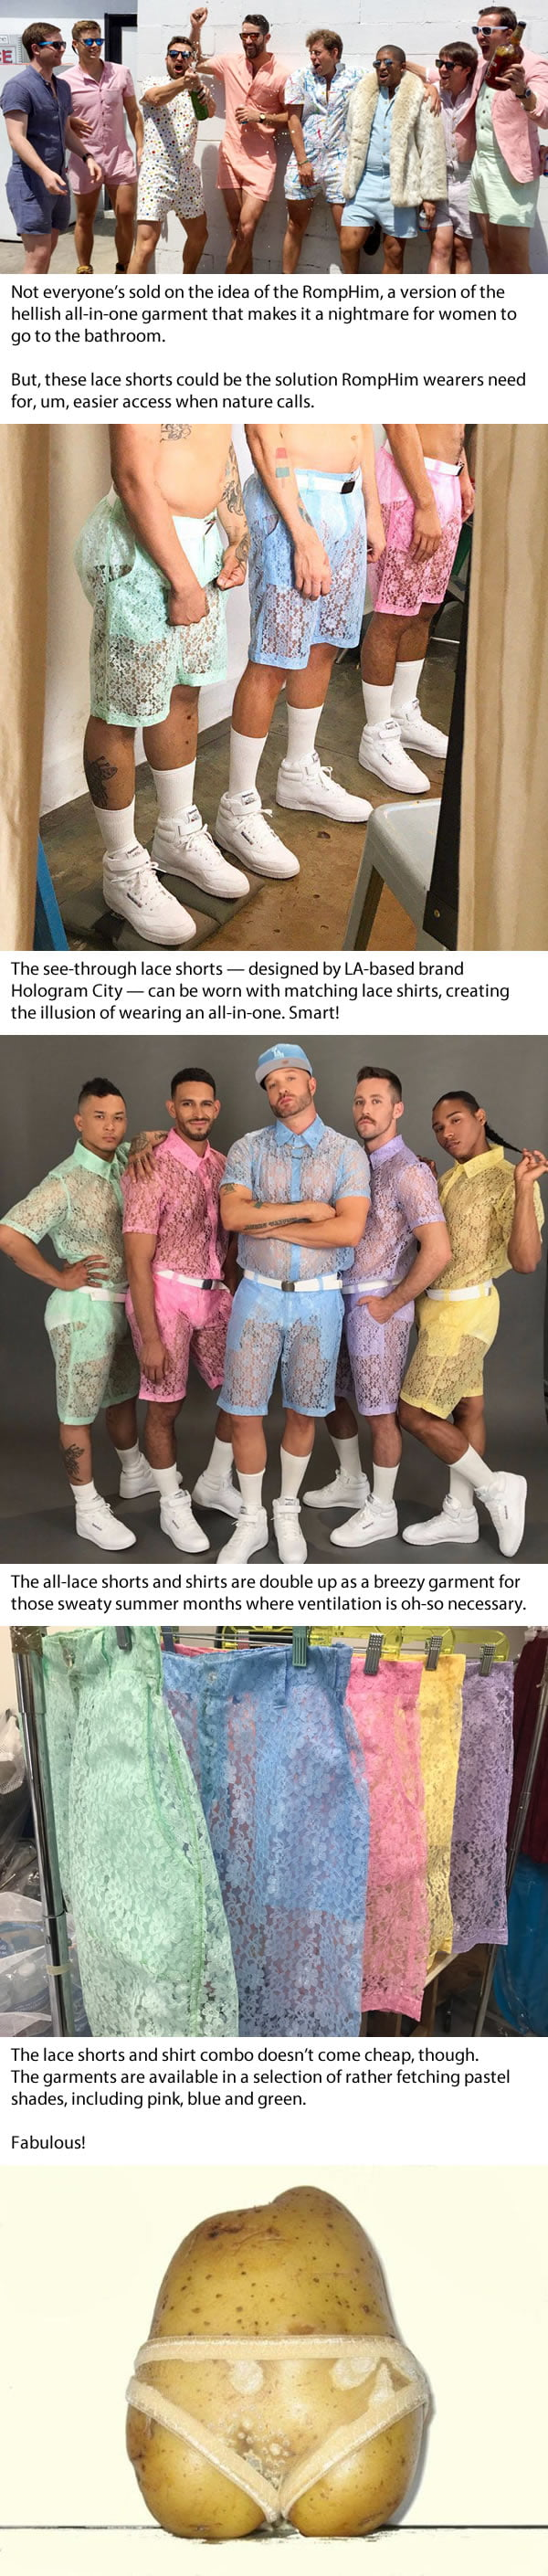 Lace shorts for men are the new RompHim and honestly who the hell design these ...